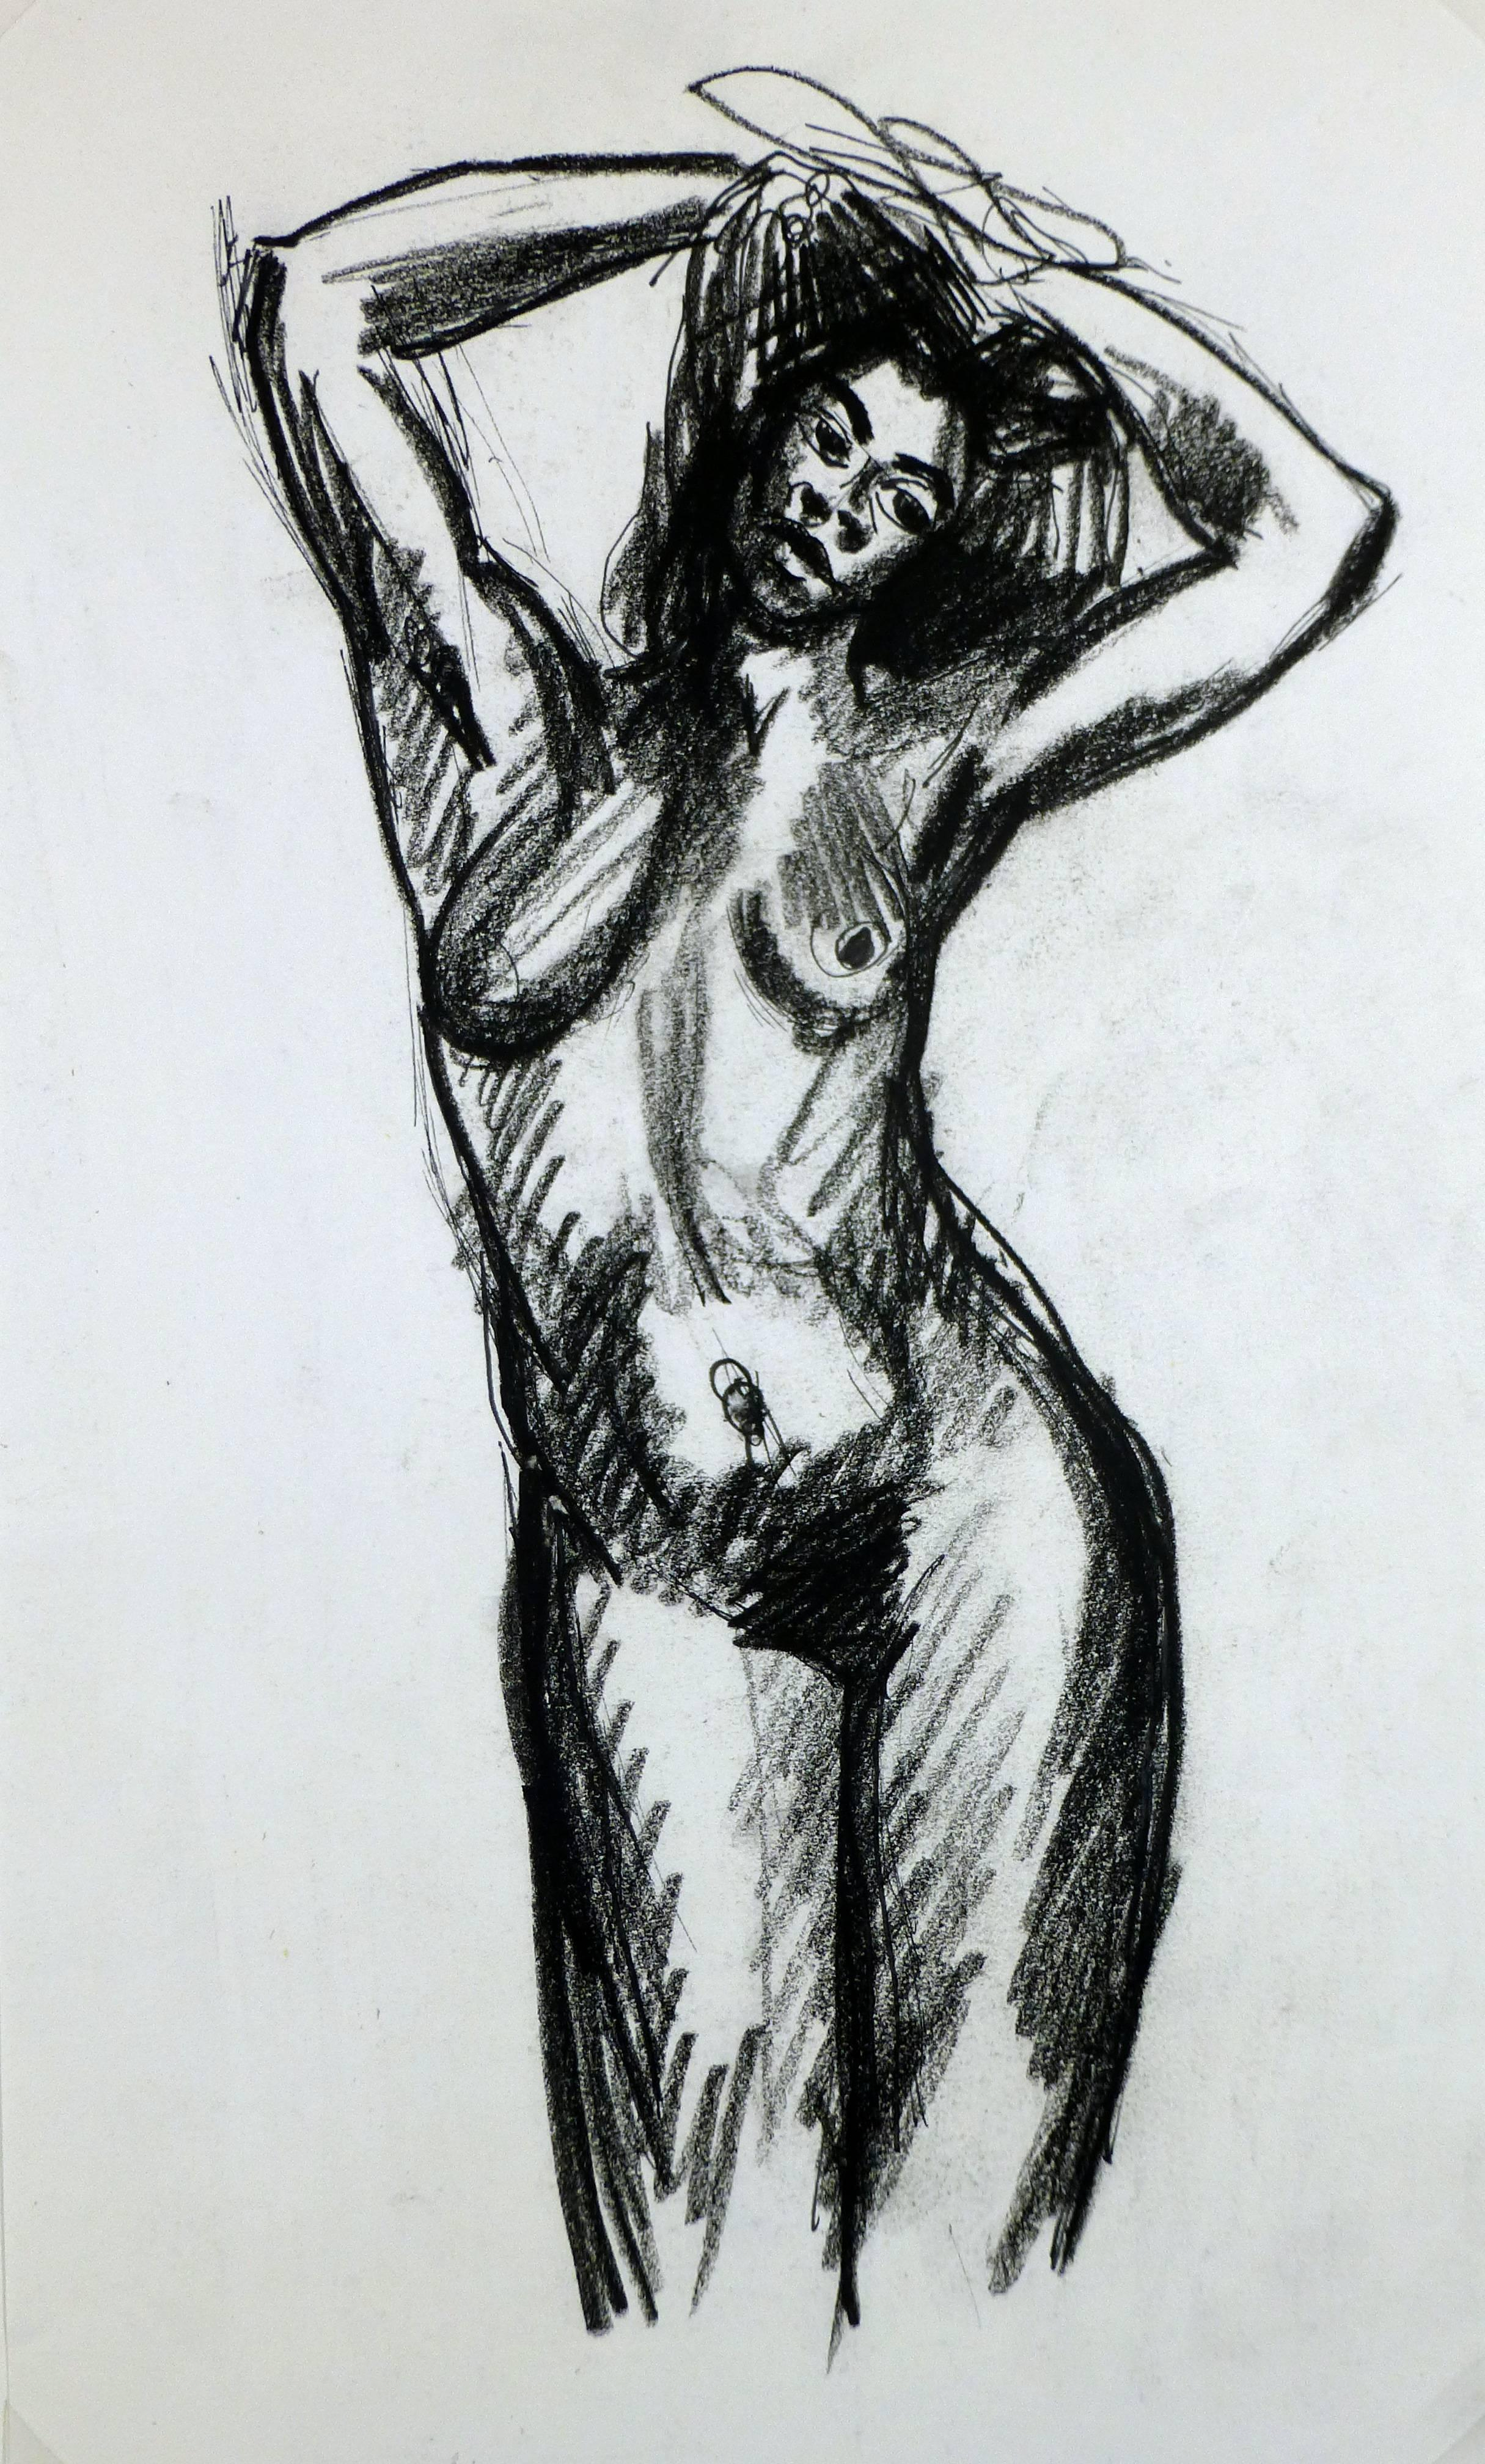 Charcoal Sketch of Nude Female